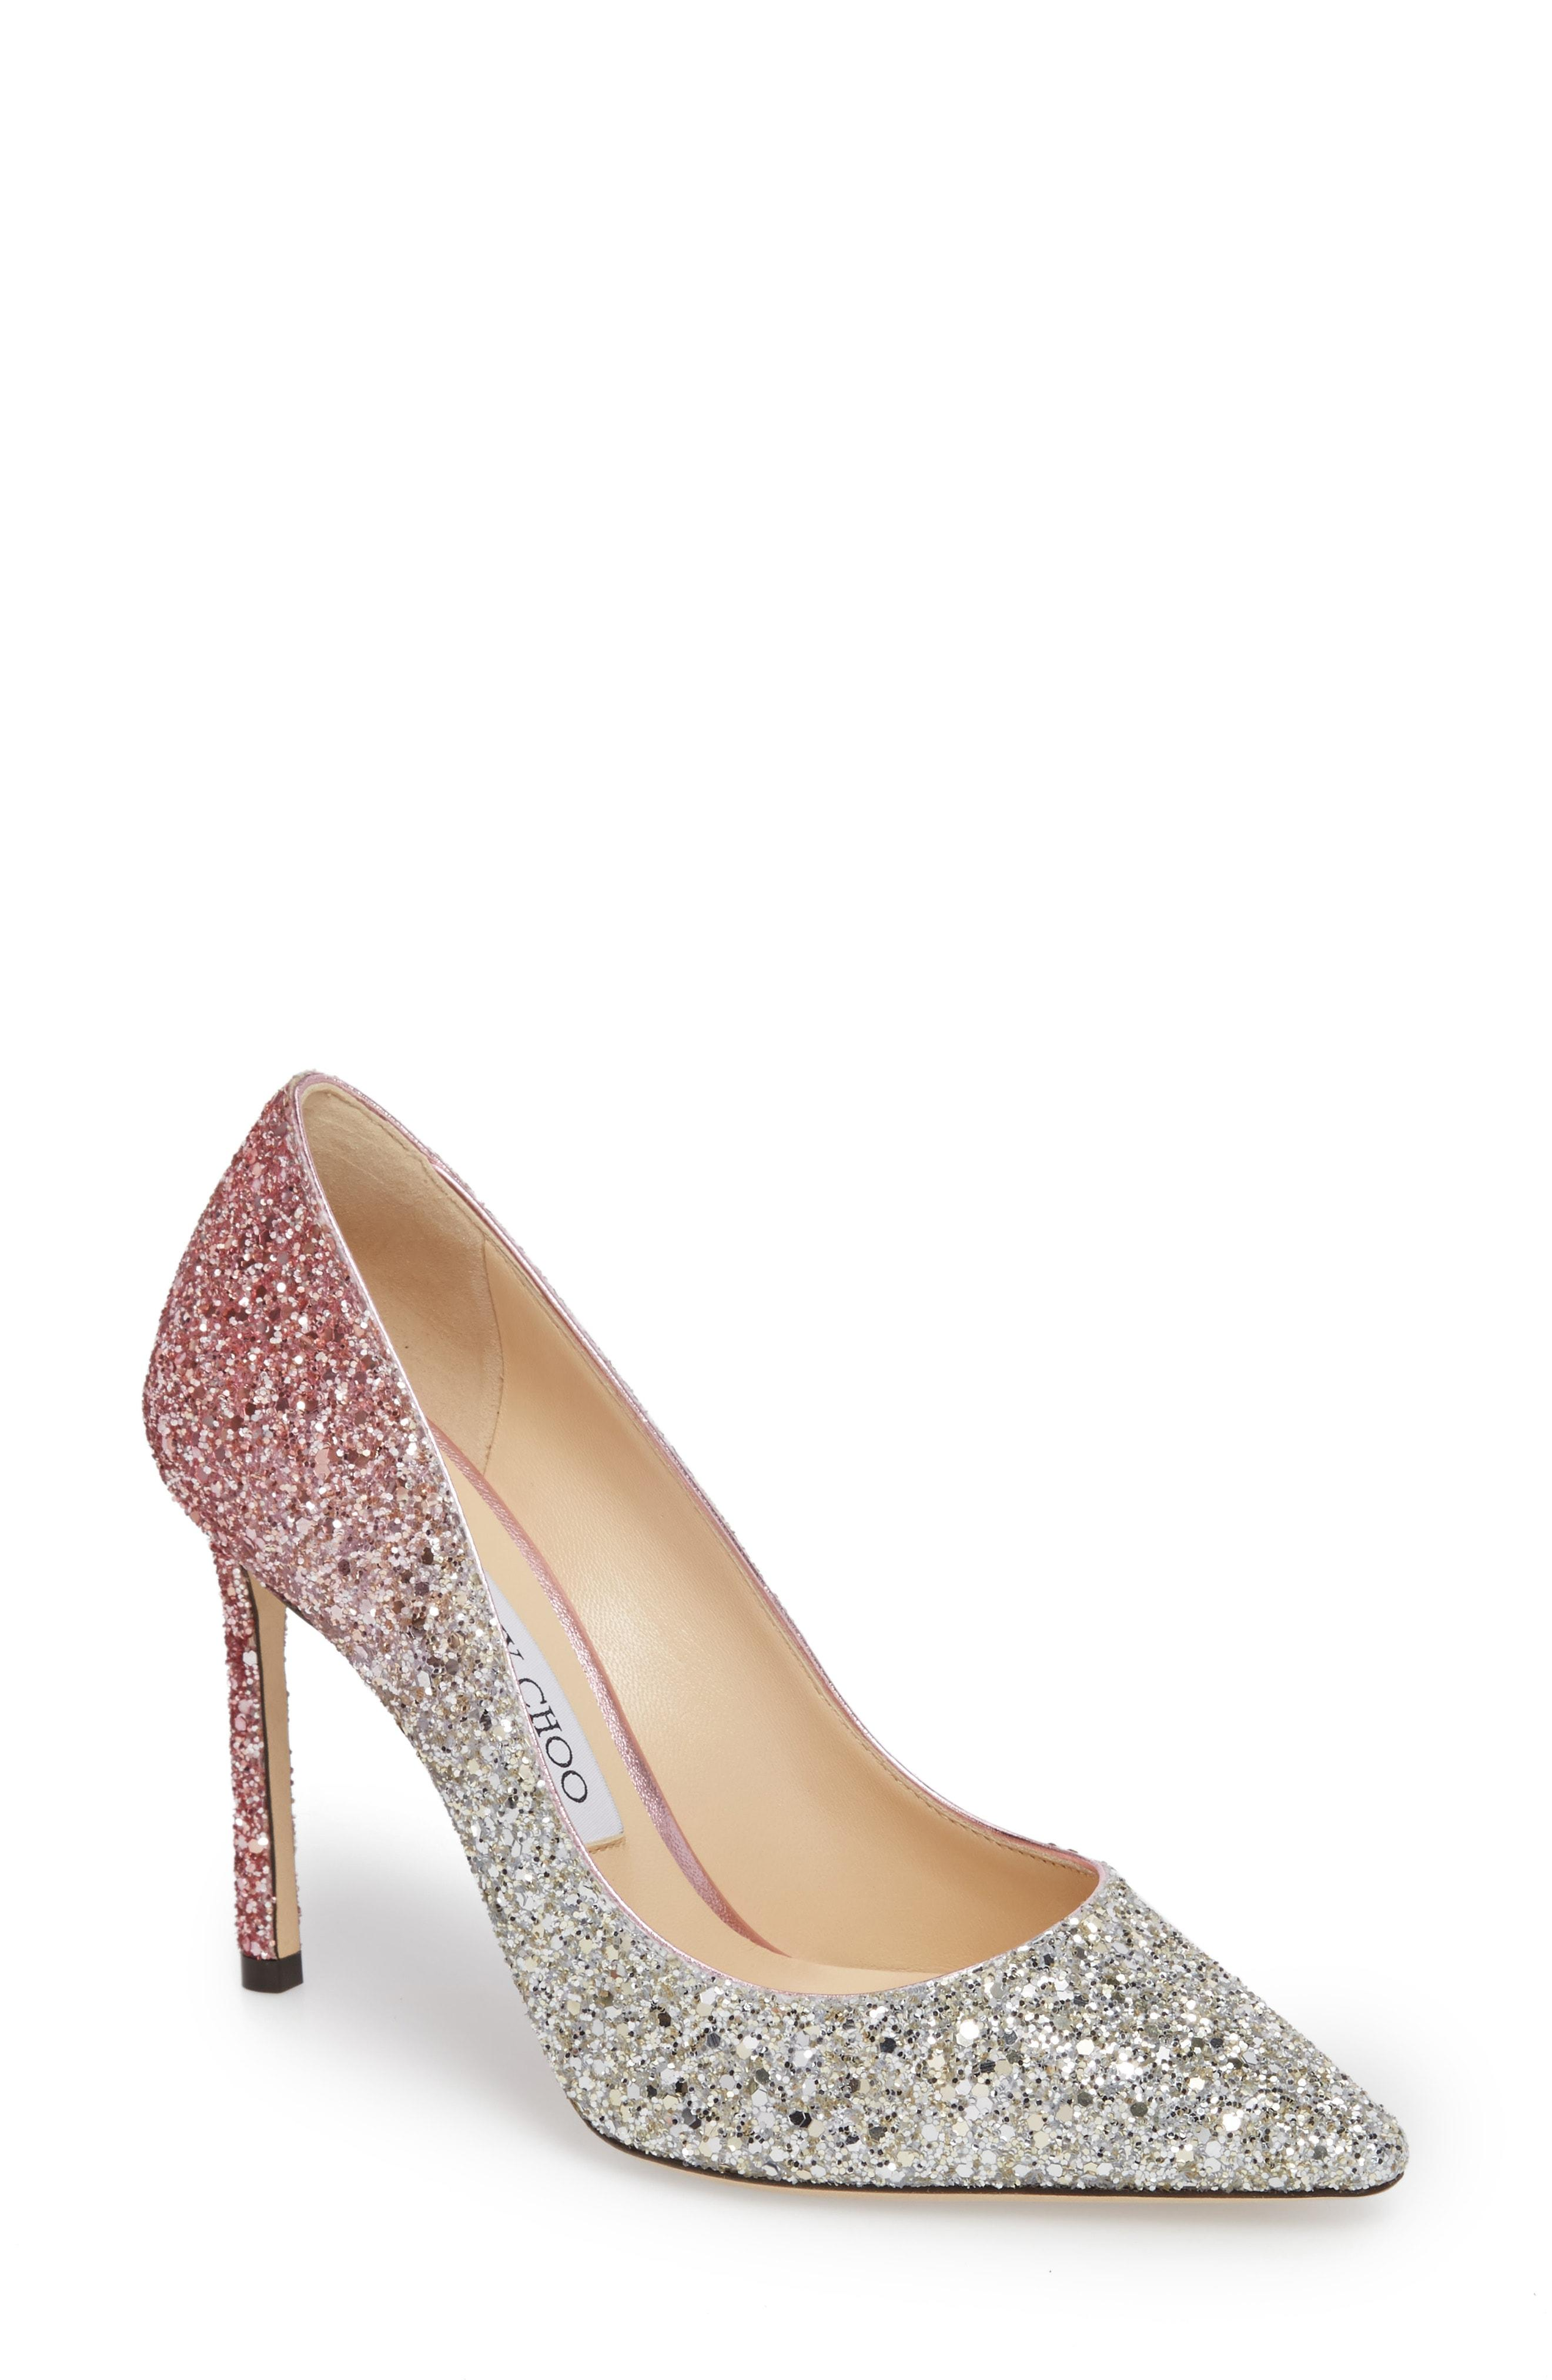 b89edc95f7d Jimmy Choo Romy 100 Platinum And Flamingo Ice Glitter DÉGradÉ Fabric Pointy  Toe Pumps In Silver